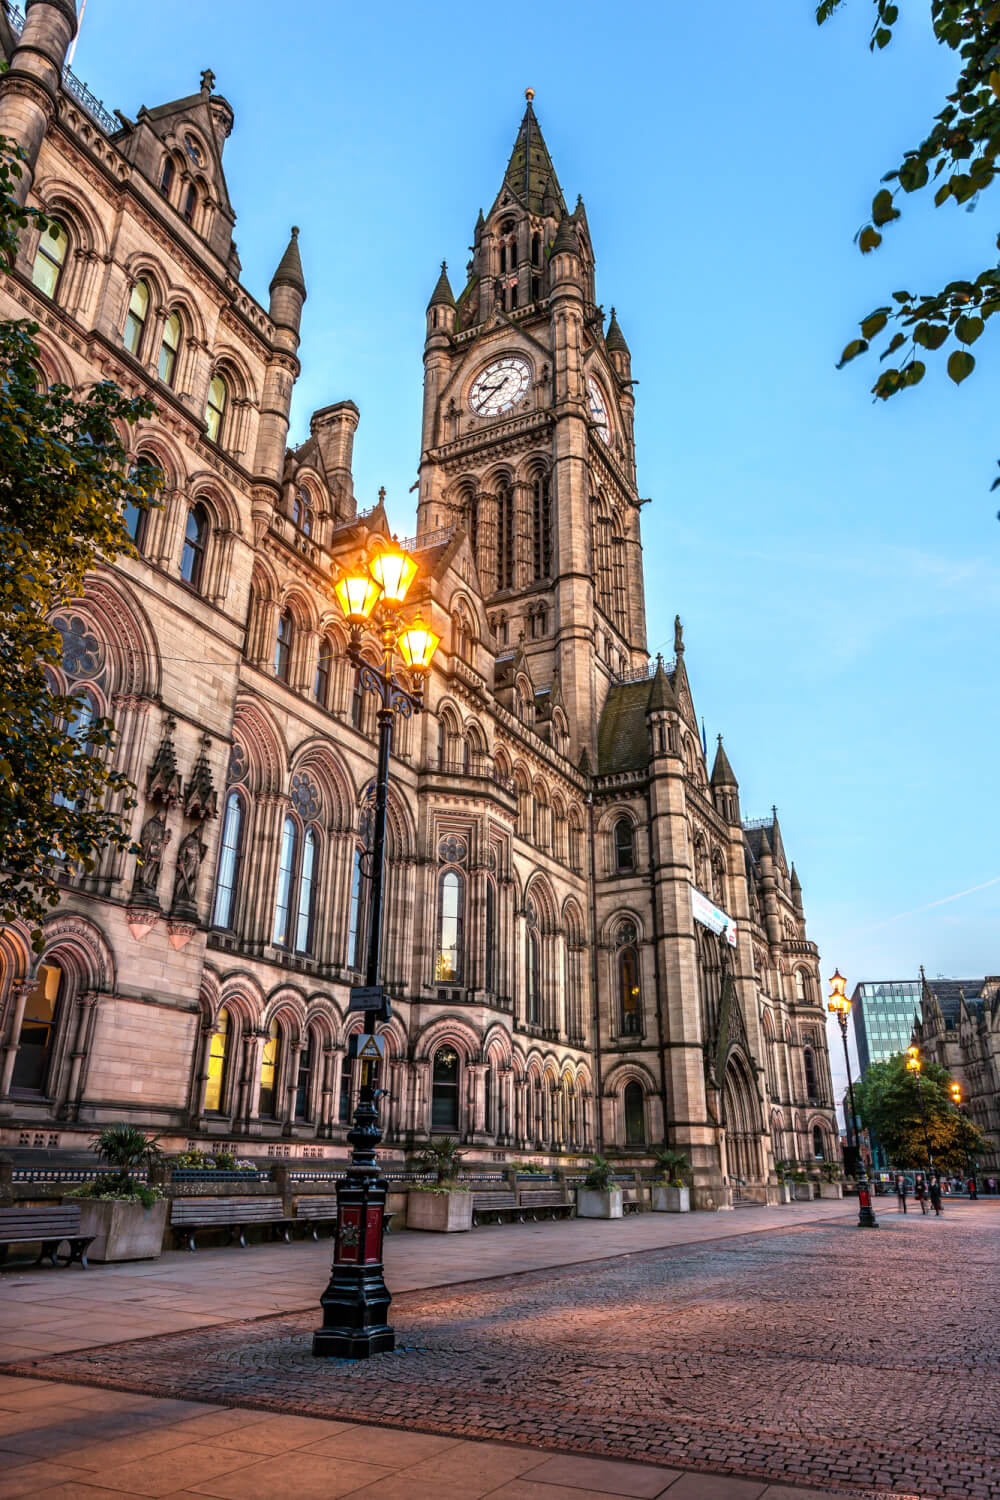 Beautiful night view of an old gorgeous building in Manchester, England.